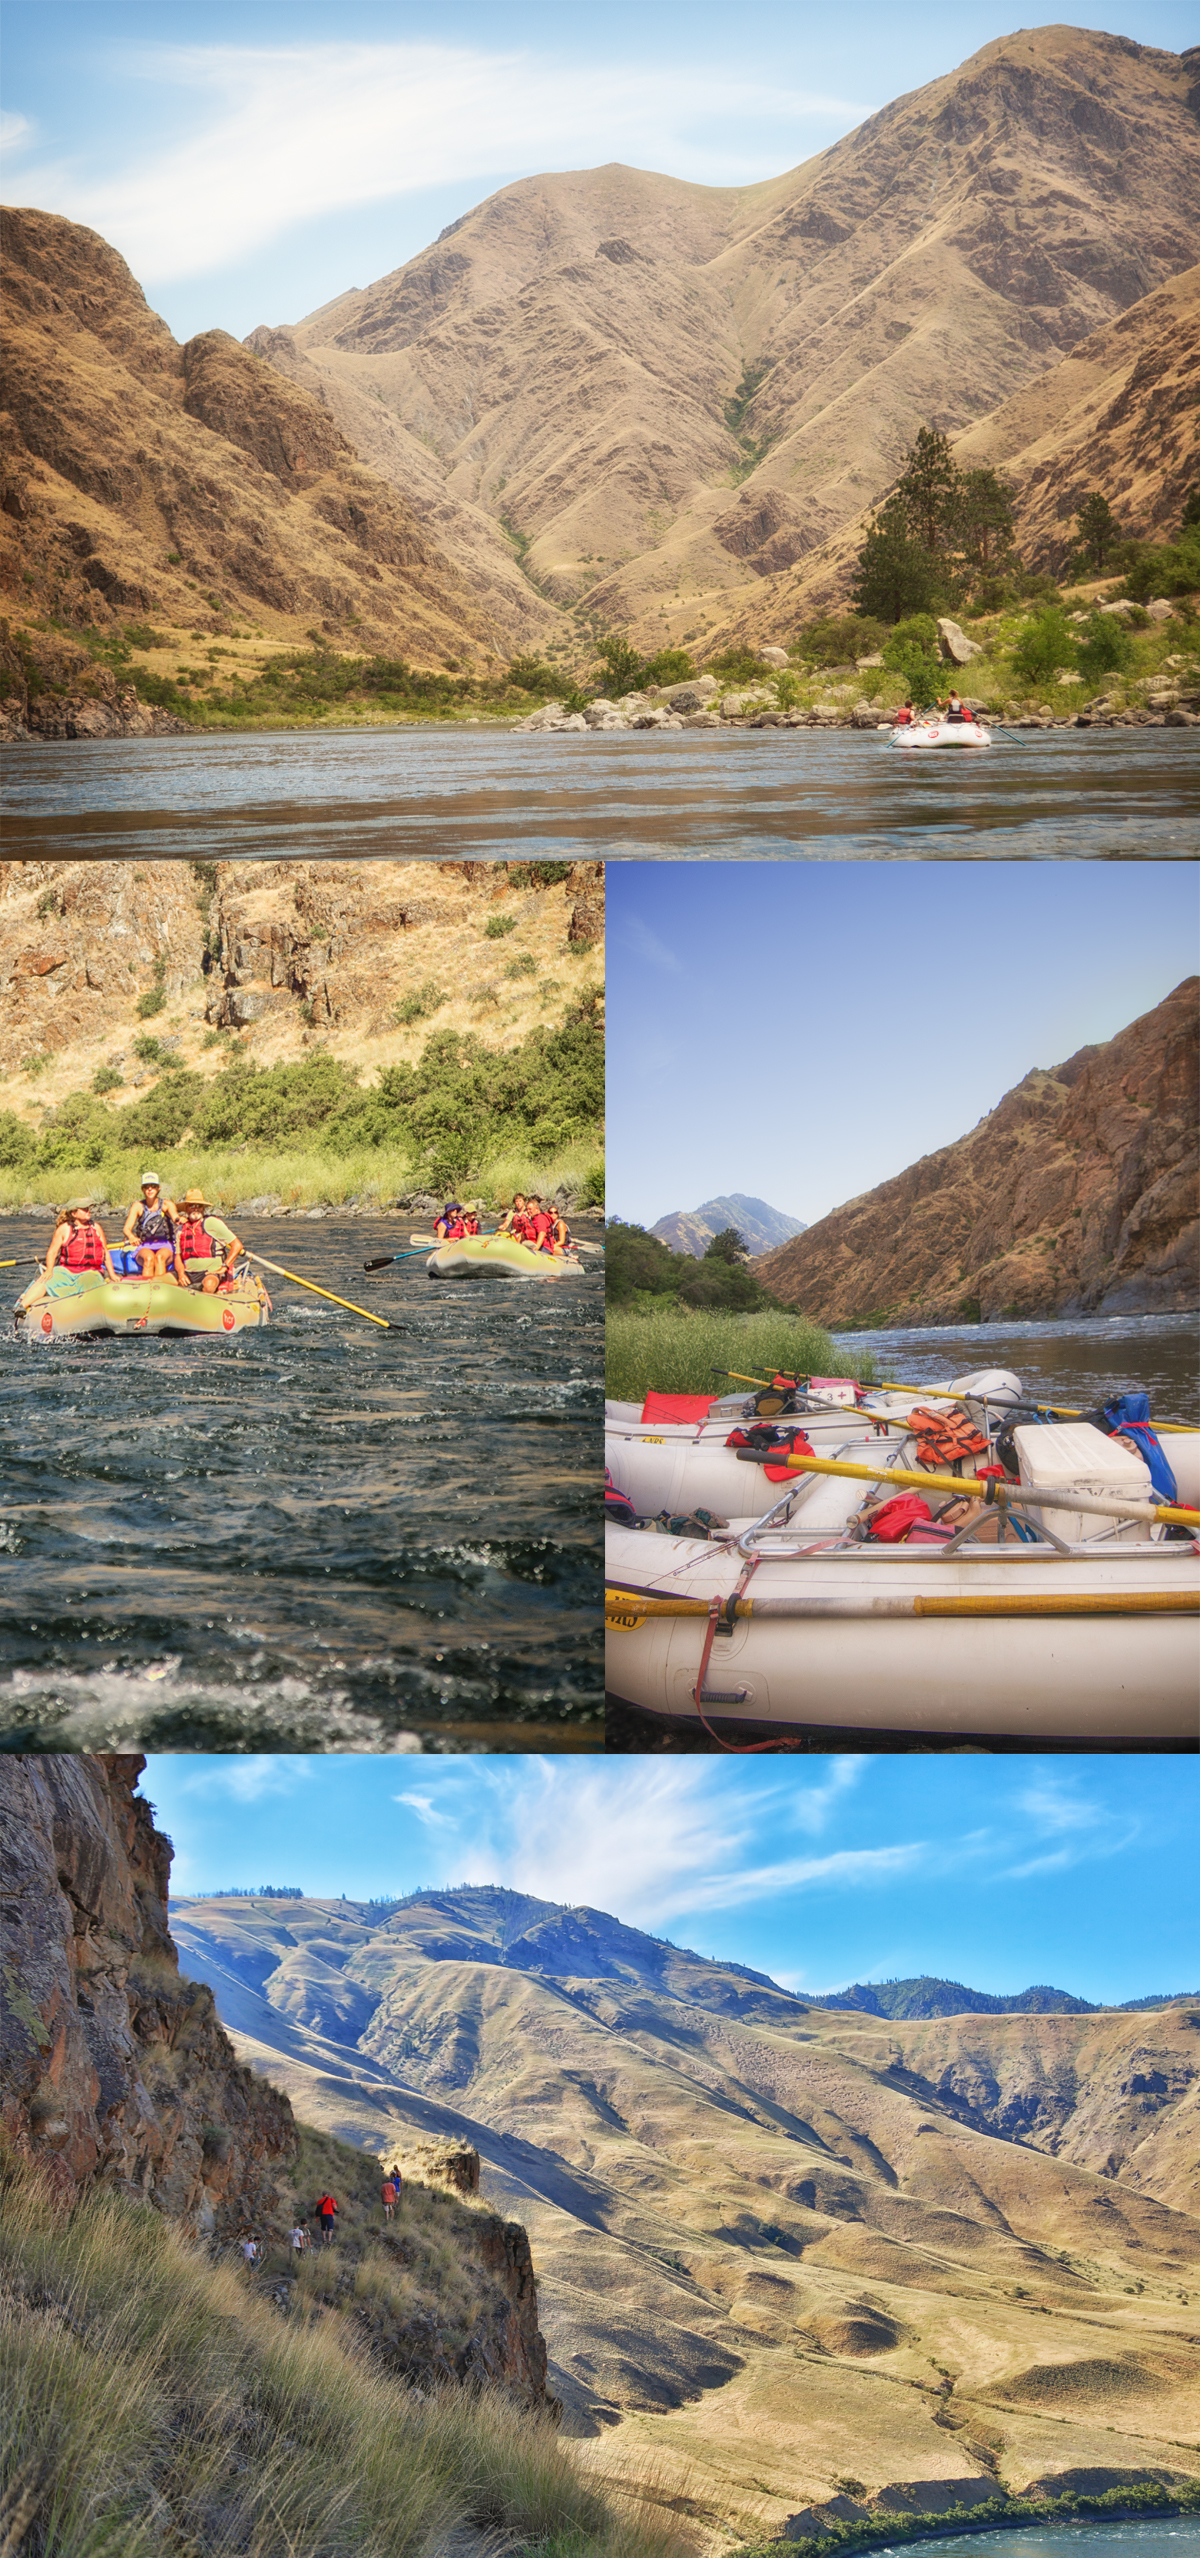 Hells Canyon River Raft trip with Hells Canyon Raft via J5MM.com